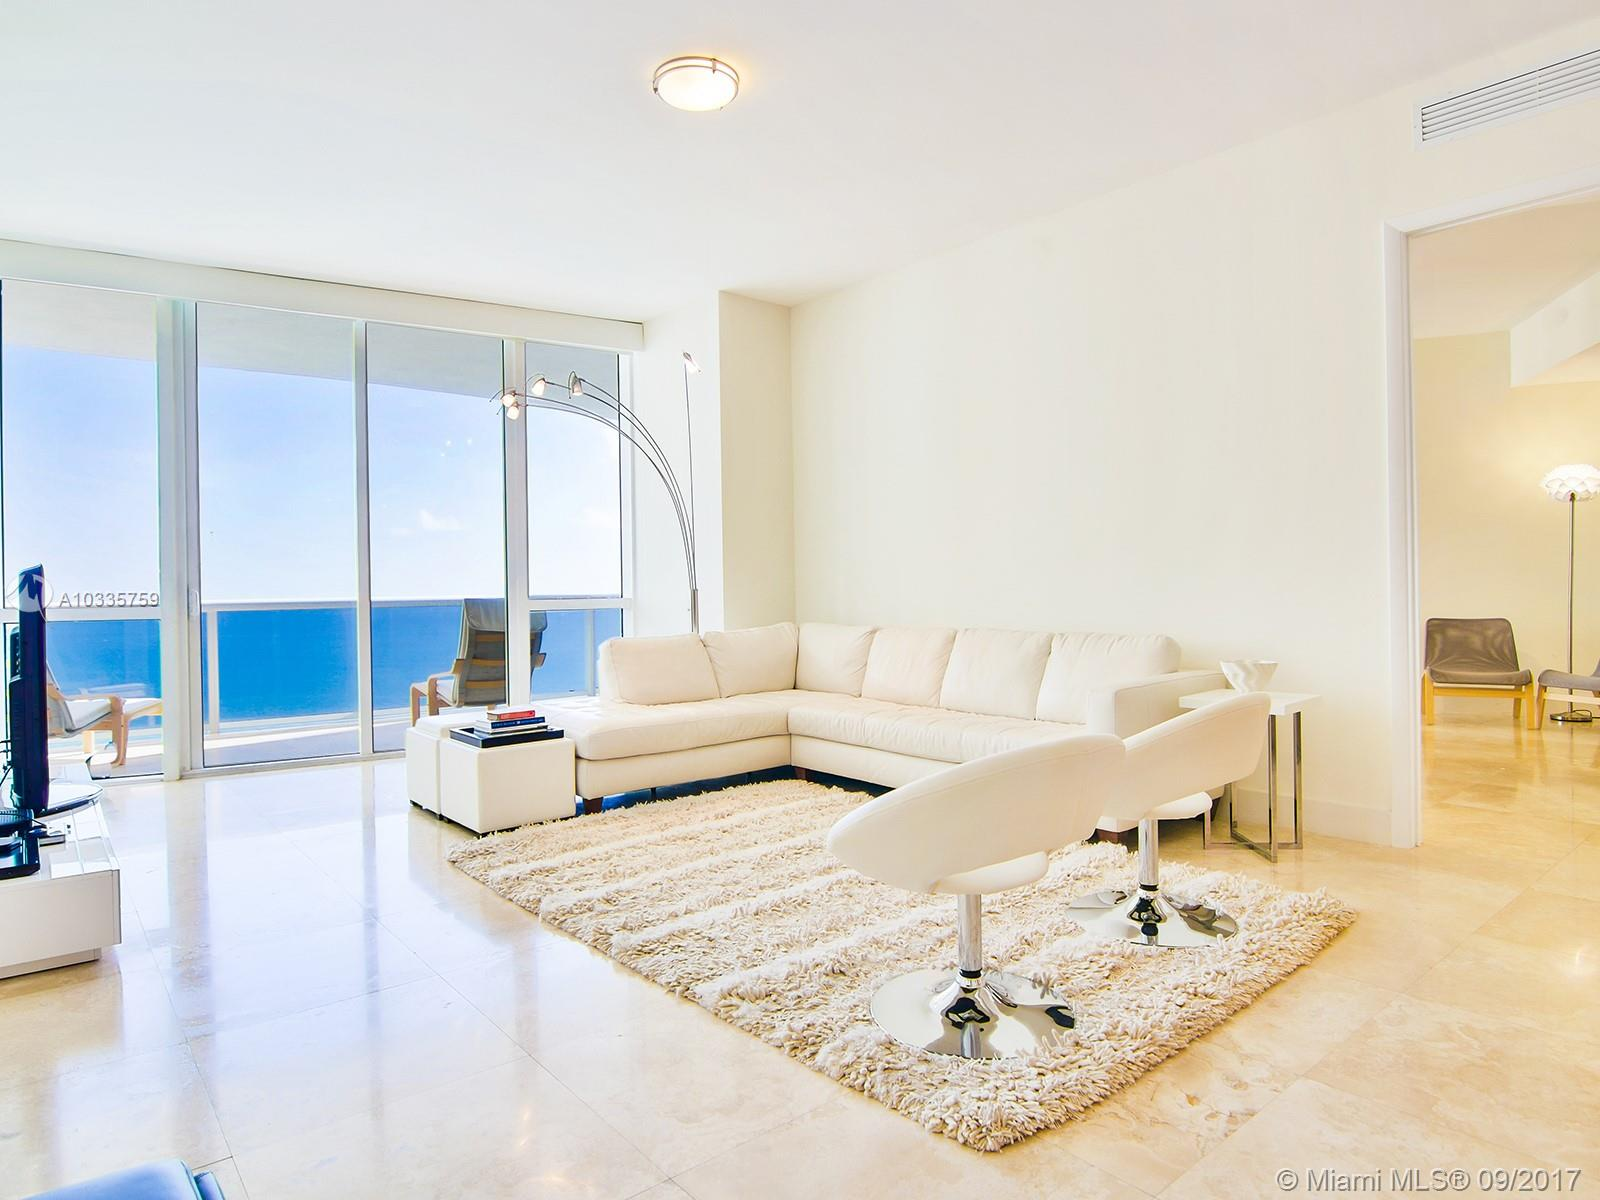 Trump Tower III #2103 - 15811 Collins Ave #2103, Sunny Isles Beach, FL 33160